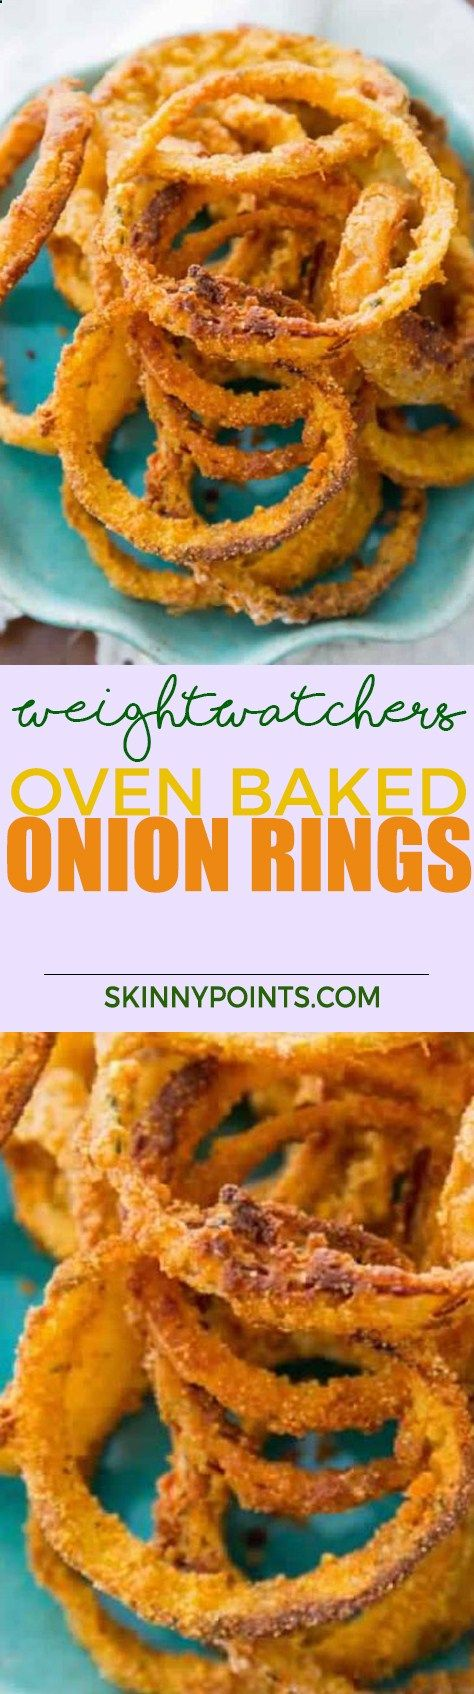 Blue apron weight watchers points - Oven Baked Onion Rings With Only 3 Weight Watchers Smart Points